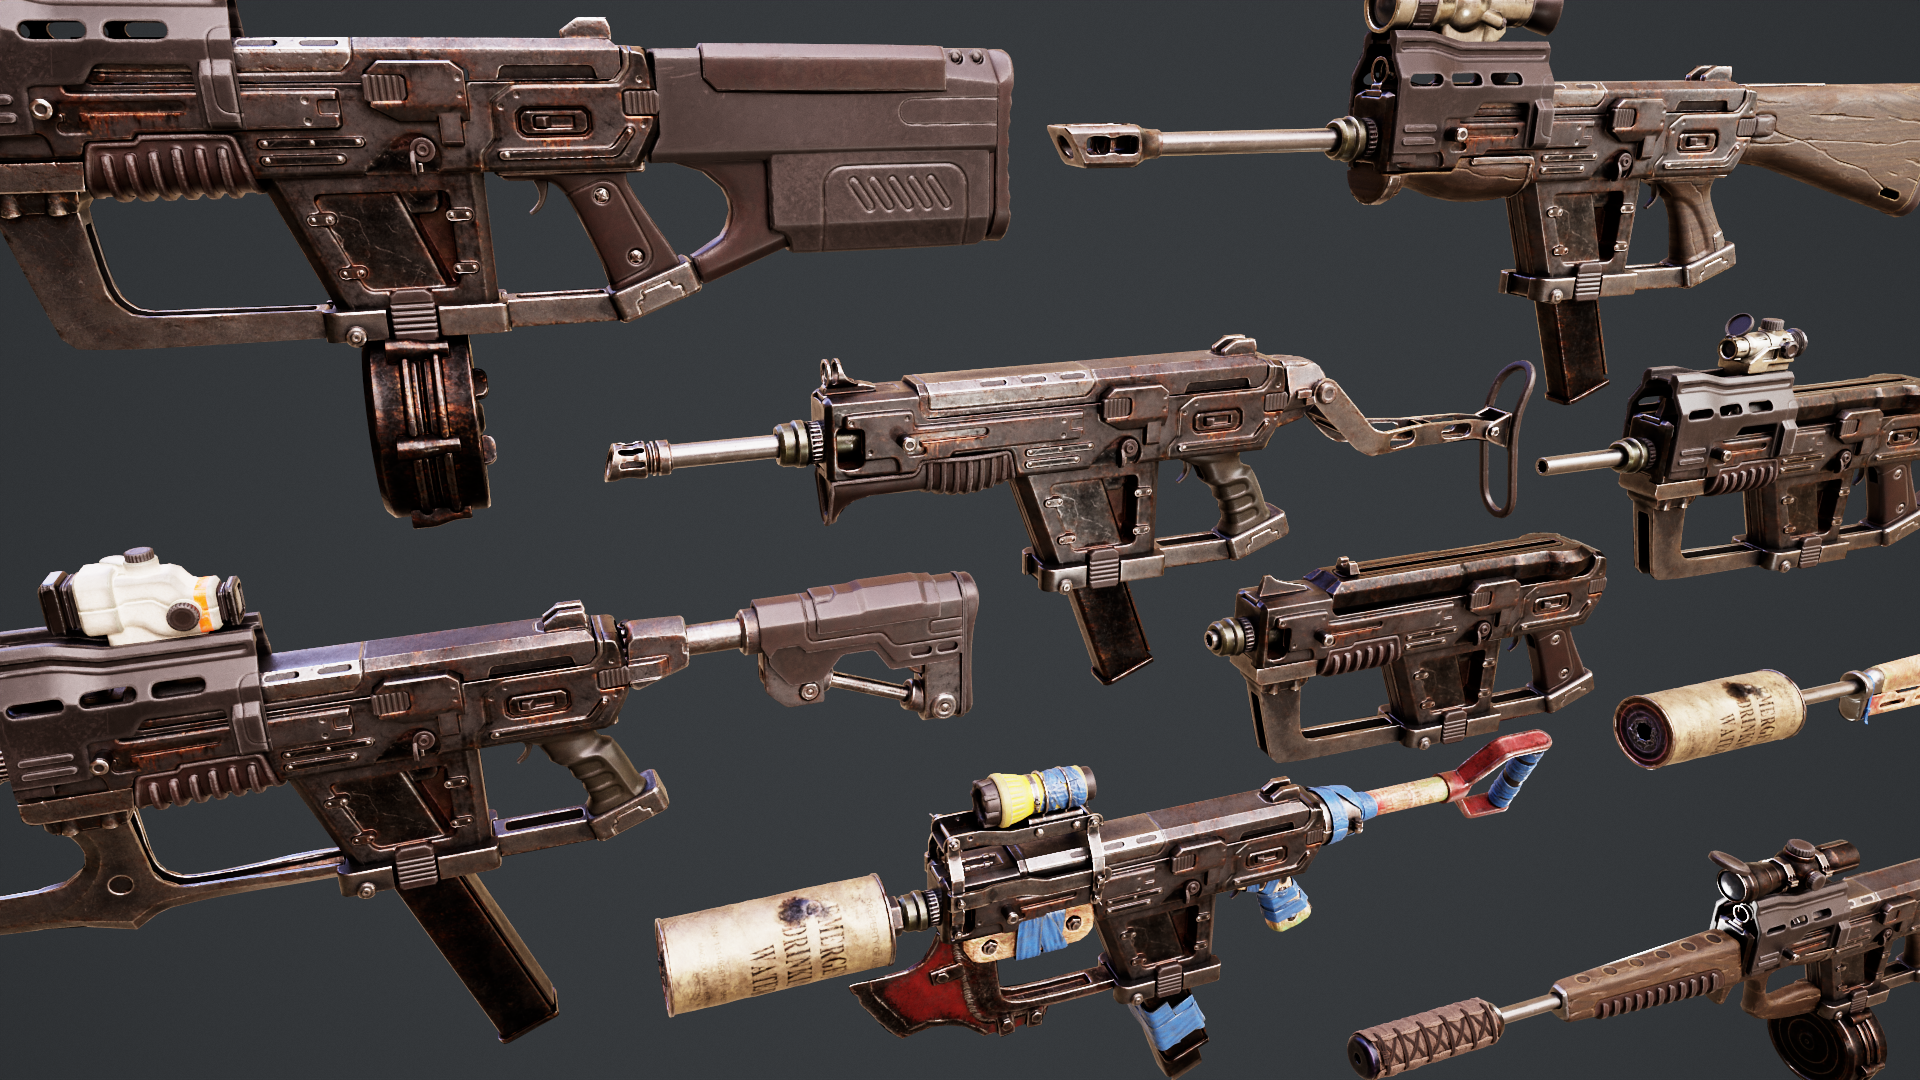 12_7mm SMG Redesign for Fallout 4 - WIP 4